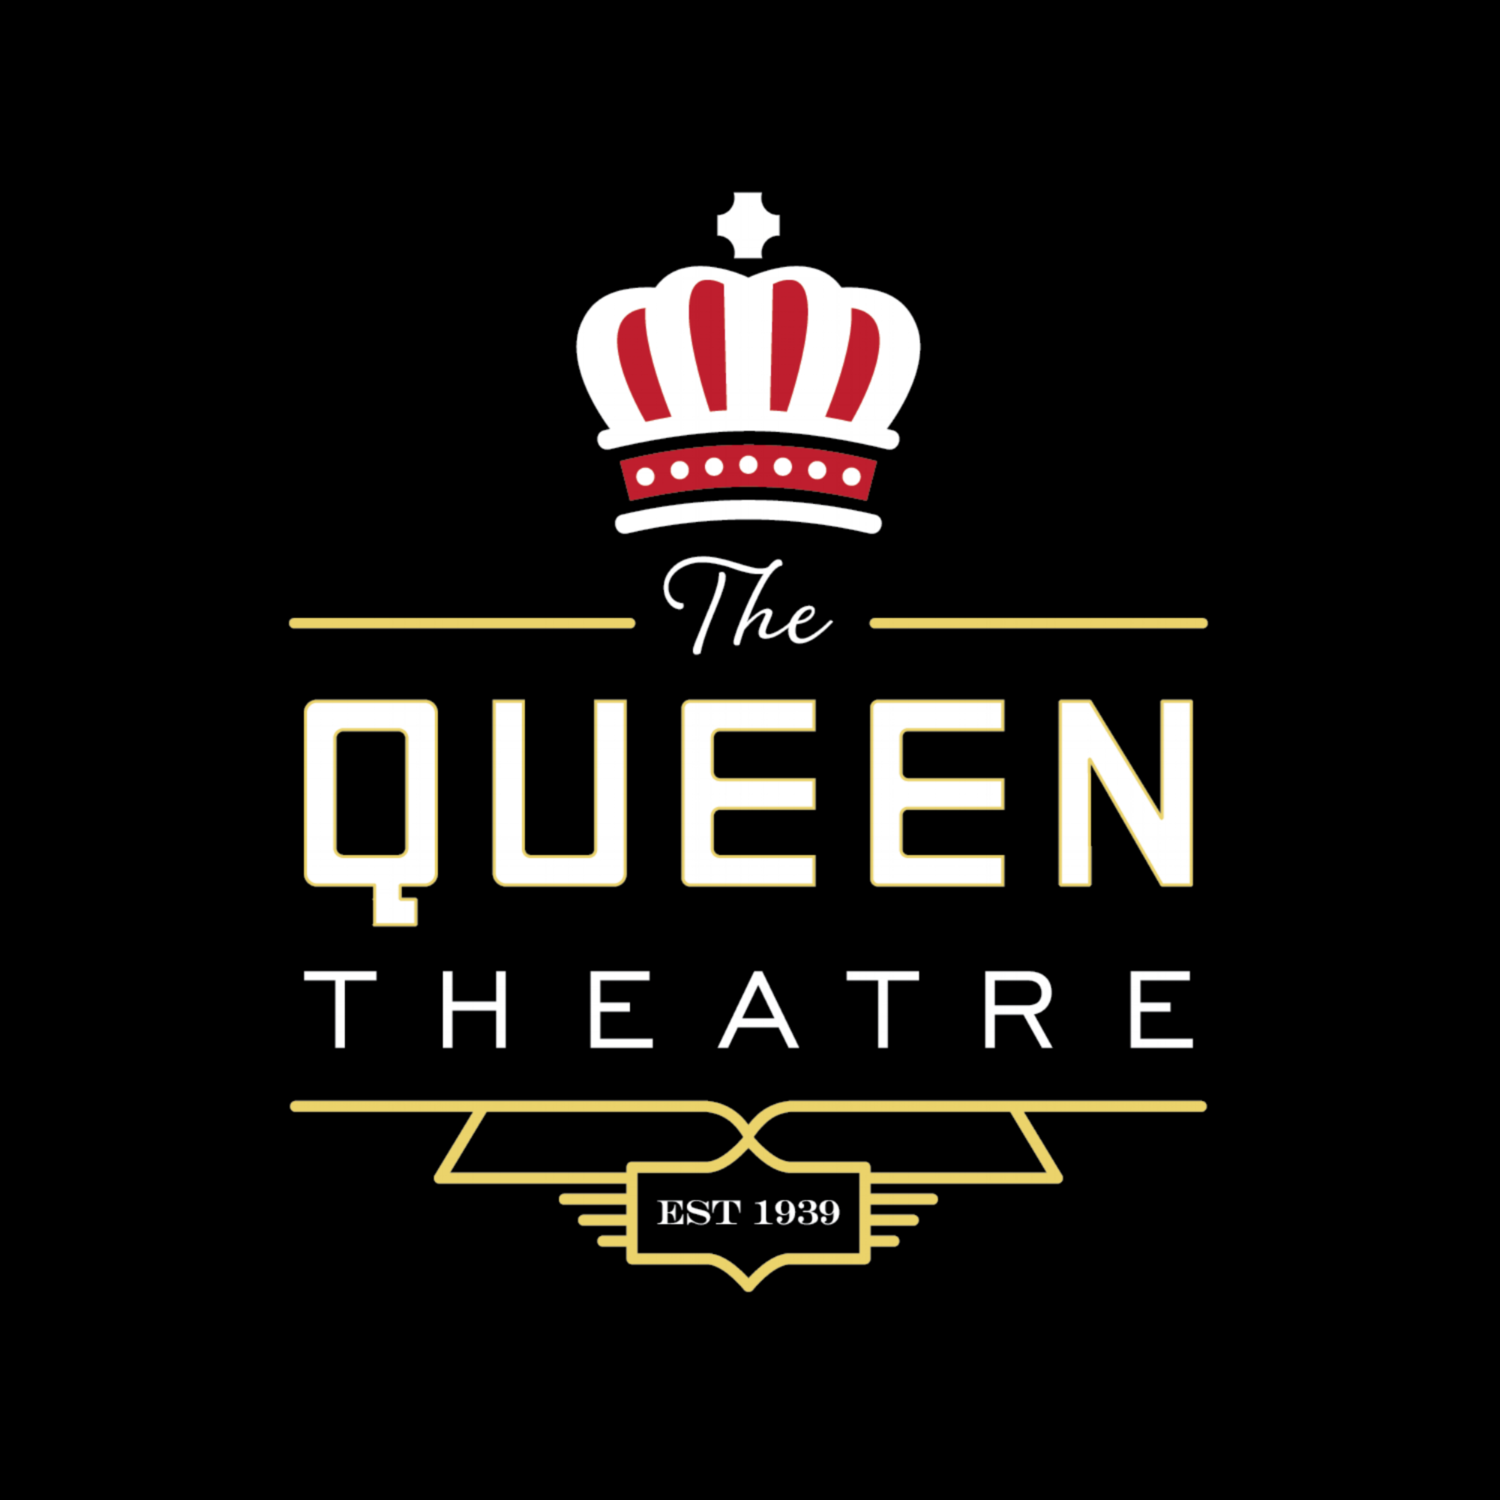 The Queen Theatre